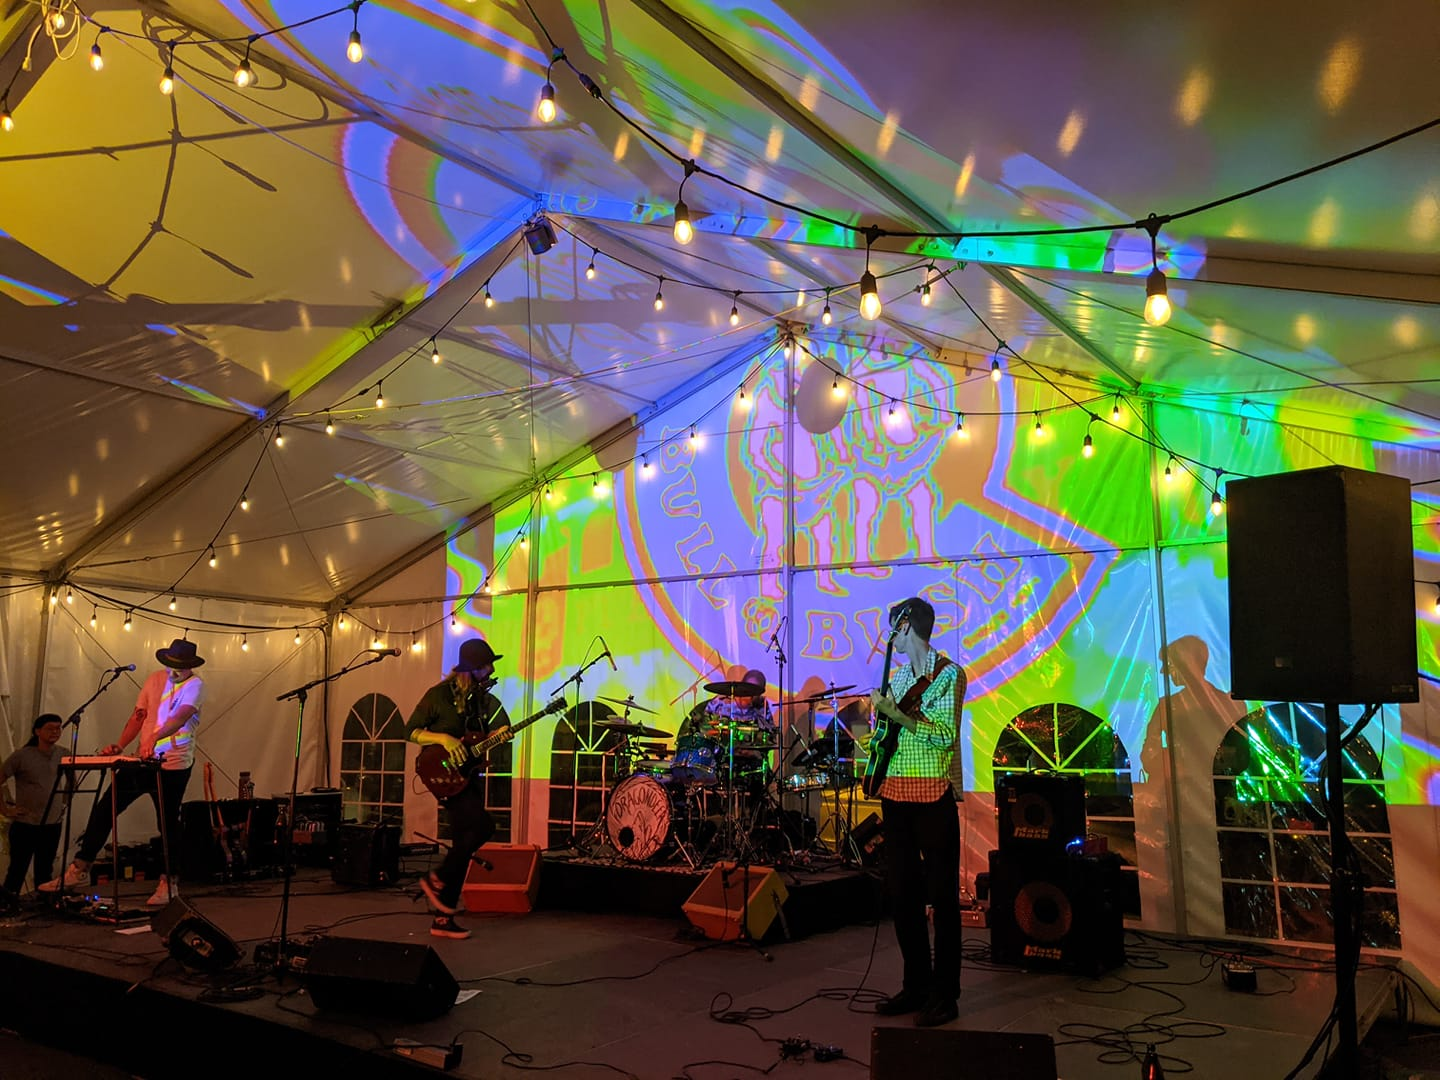 Image of the 50 year anniversary concert at Bull & Bush Brewery in Denver, Colorado